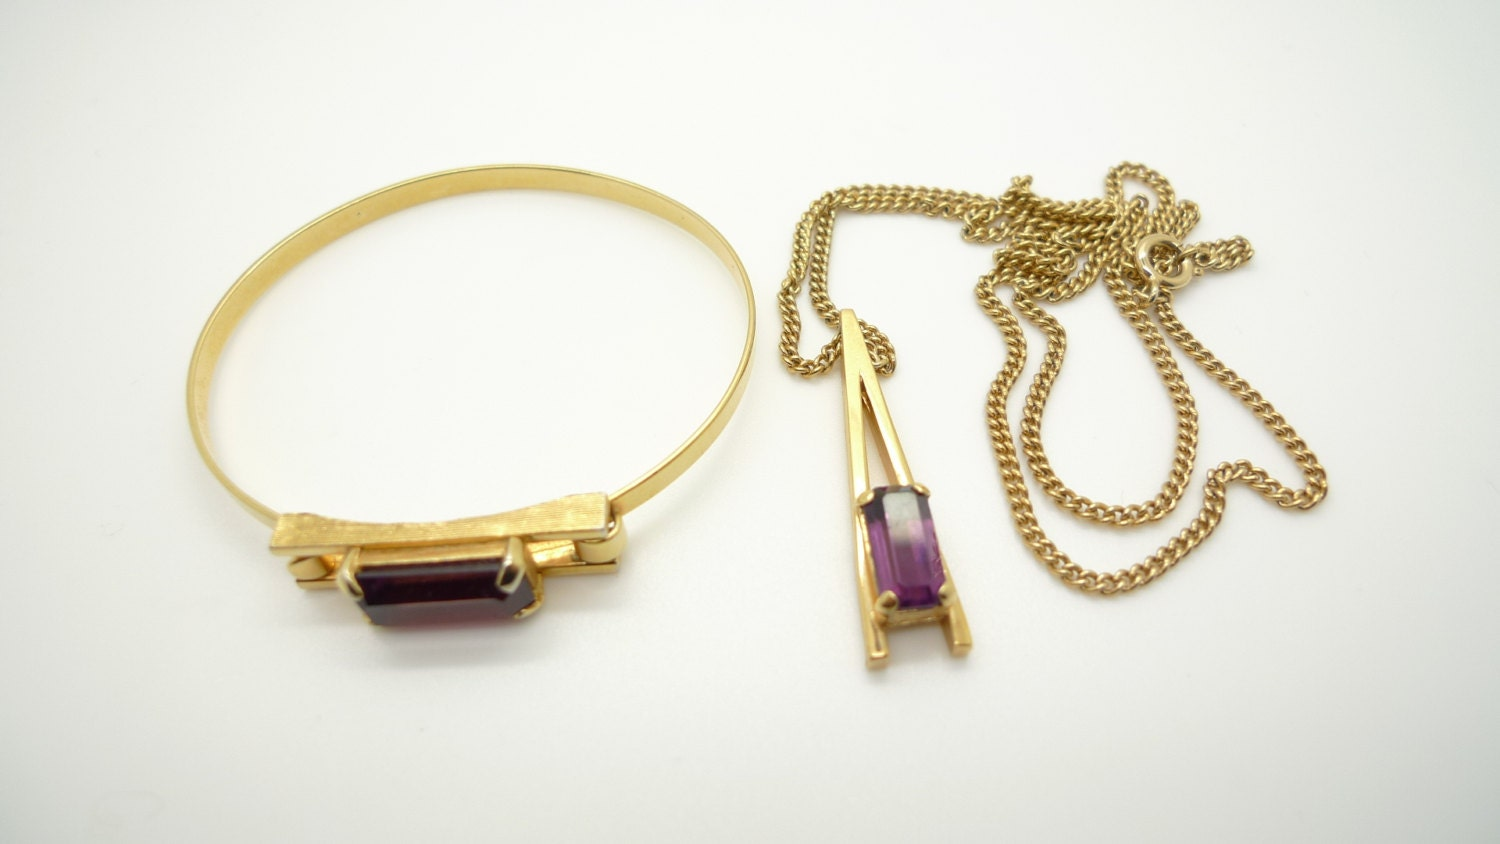 Avon Vintage 1970s Gold and Amethyst Glass Stone Bracelet and Necklace with Pendant